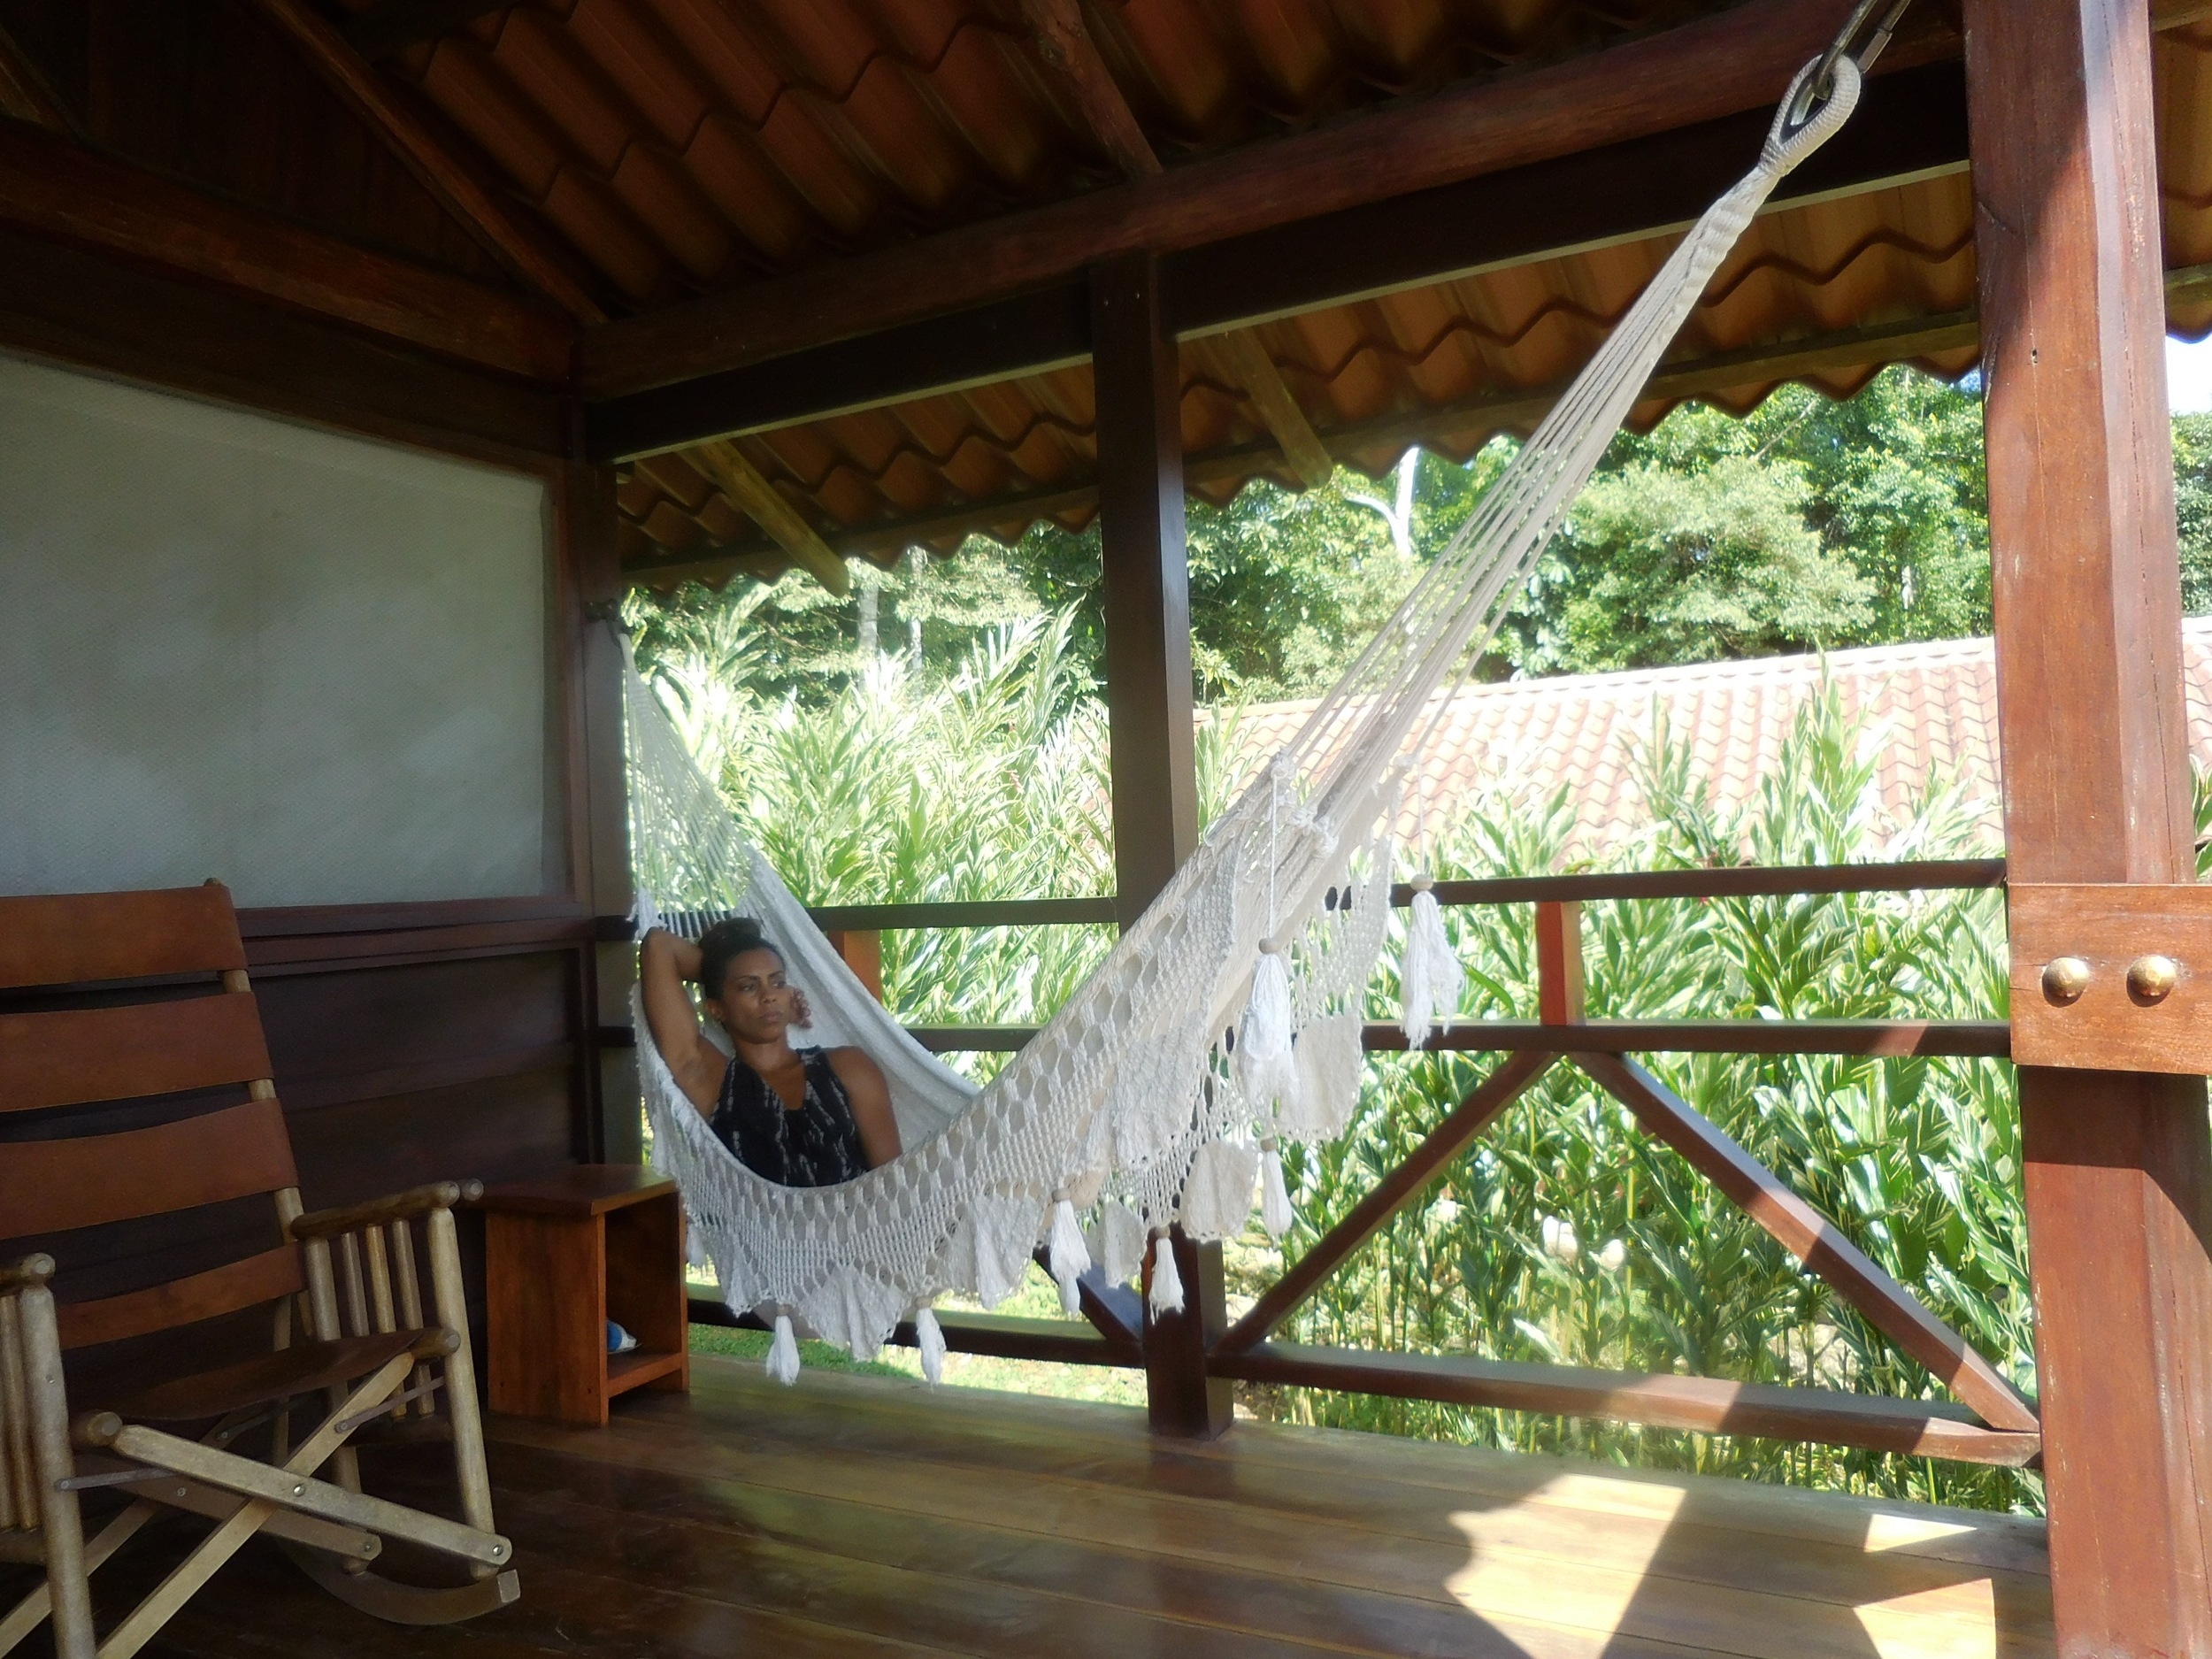 Laying in the hammock on my porch in the rainforest.